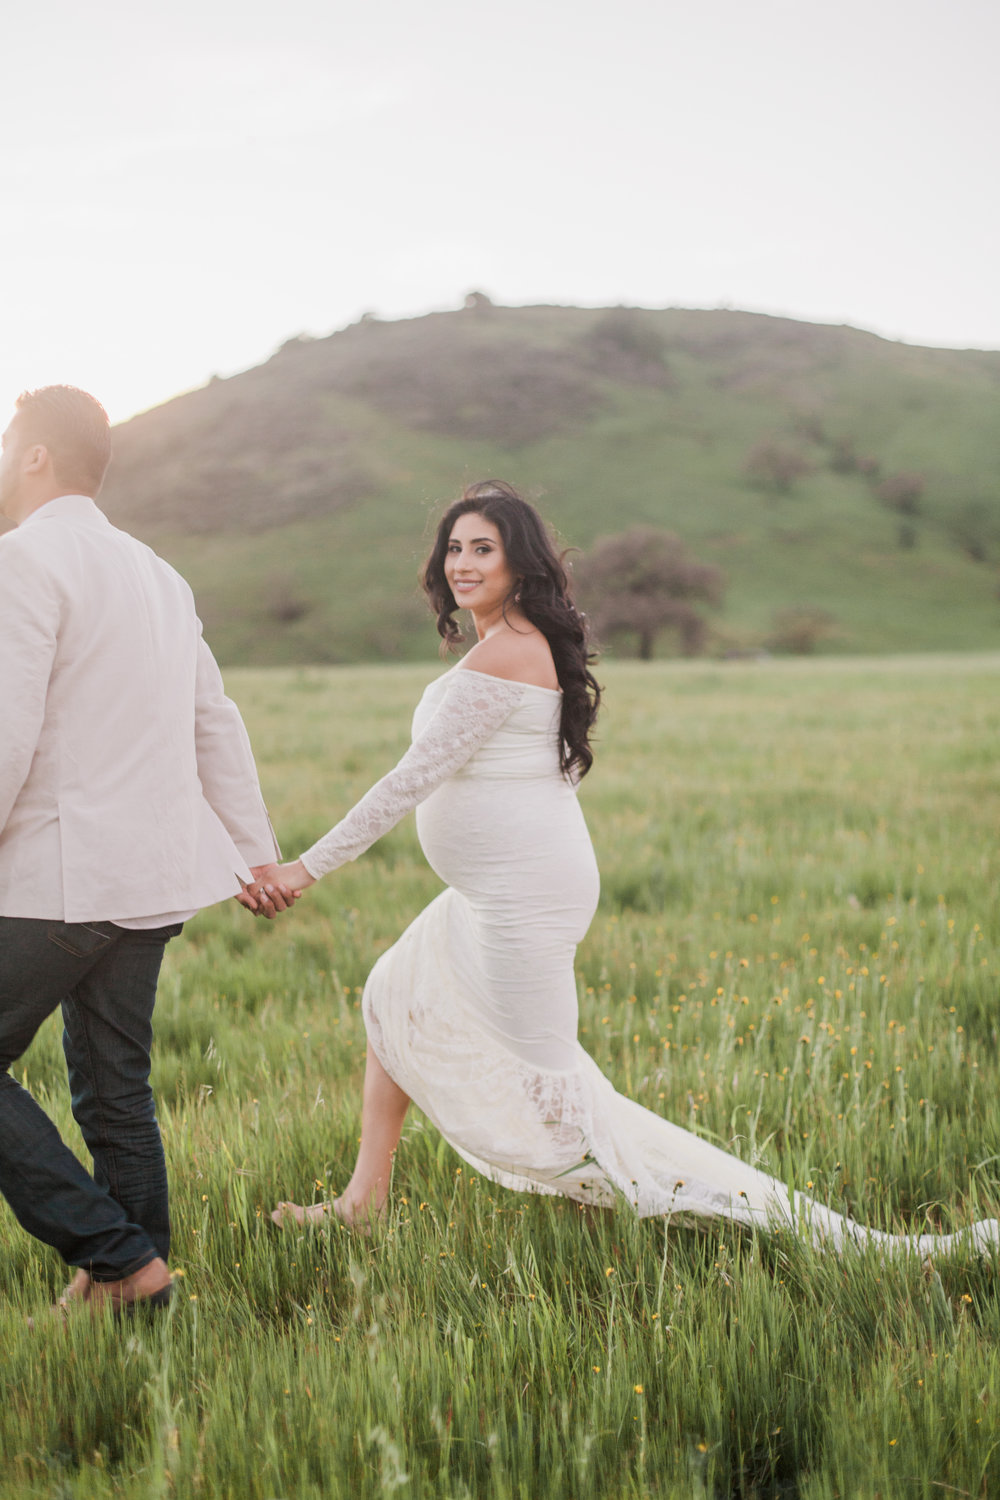 Couple walking in grass field during maternity session in San Jose, California.